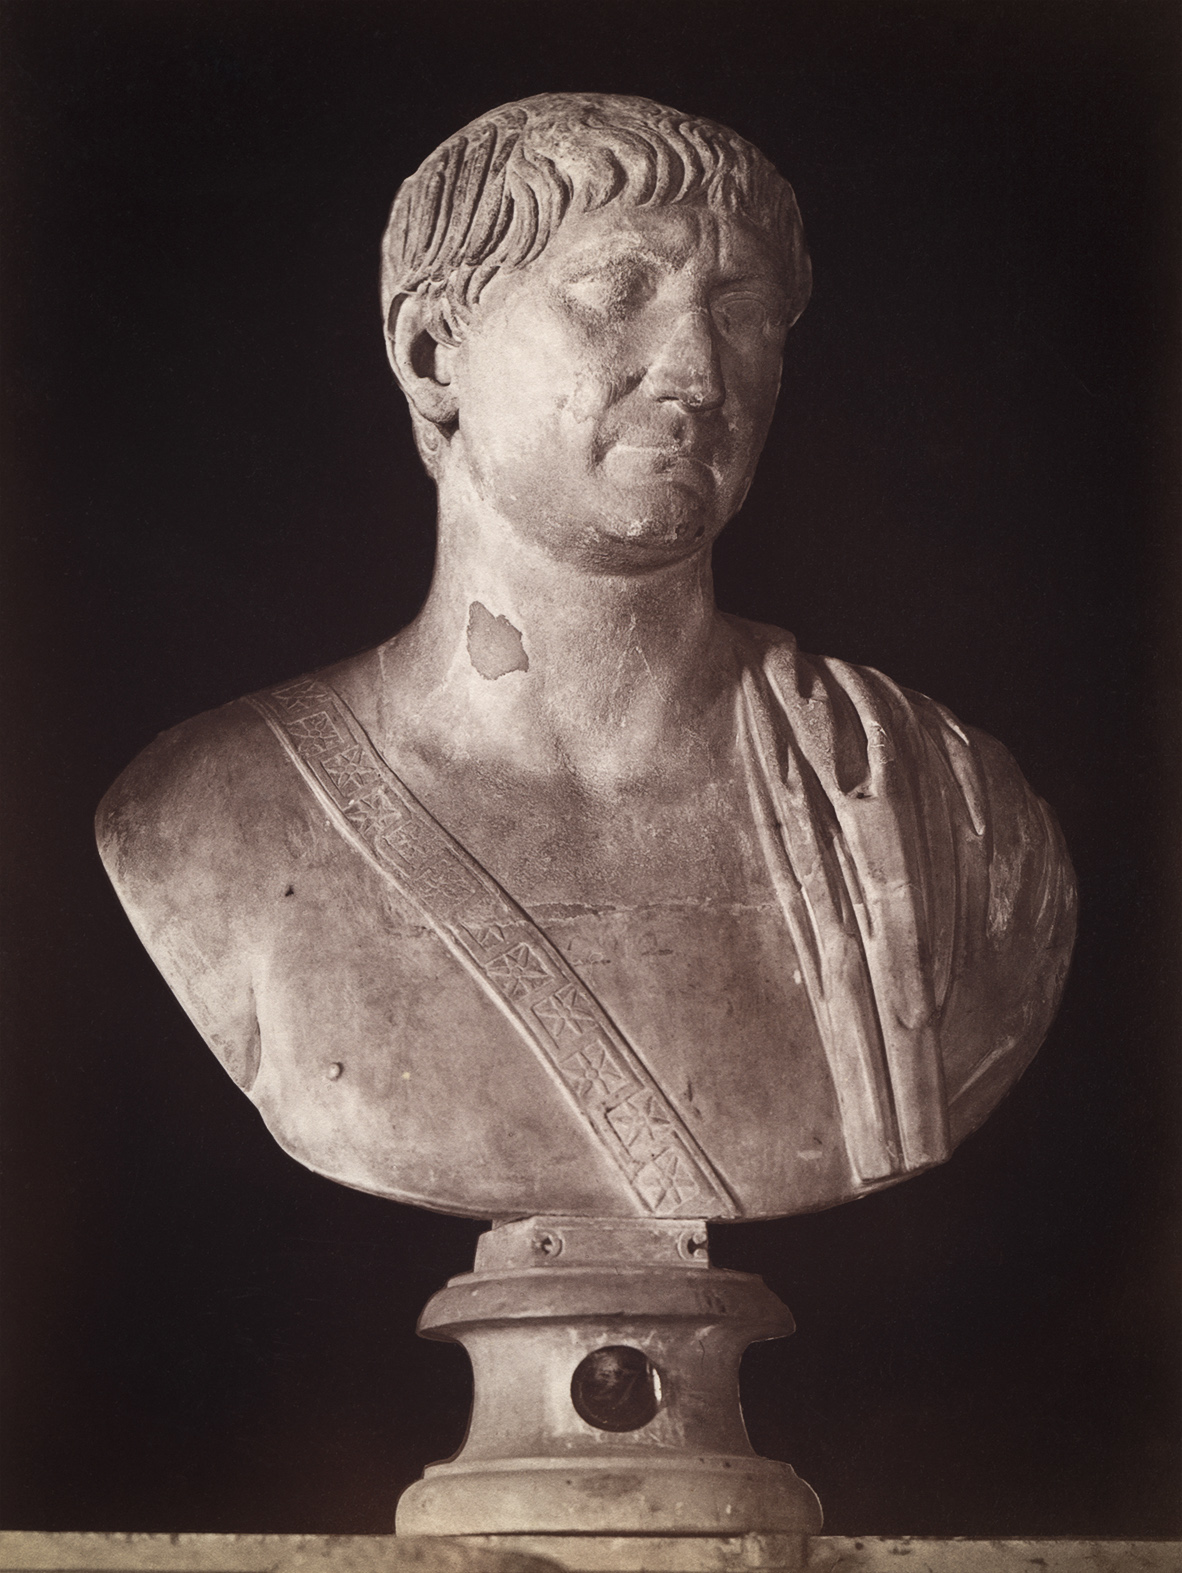 Ulpius Trajanus, adopted son of Nerva. Marble. Rome, Capitoline Museums, Palazzo Nuovo, Hall of the Emperors